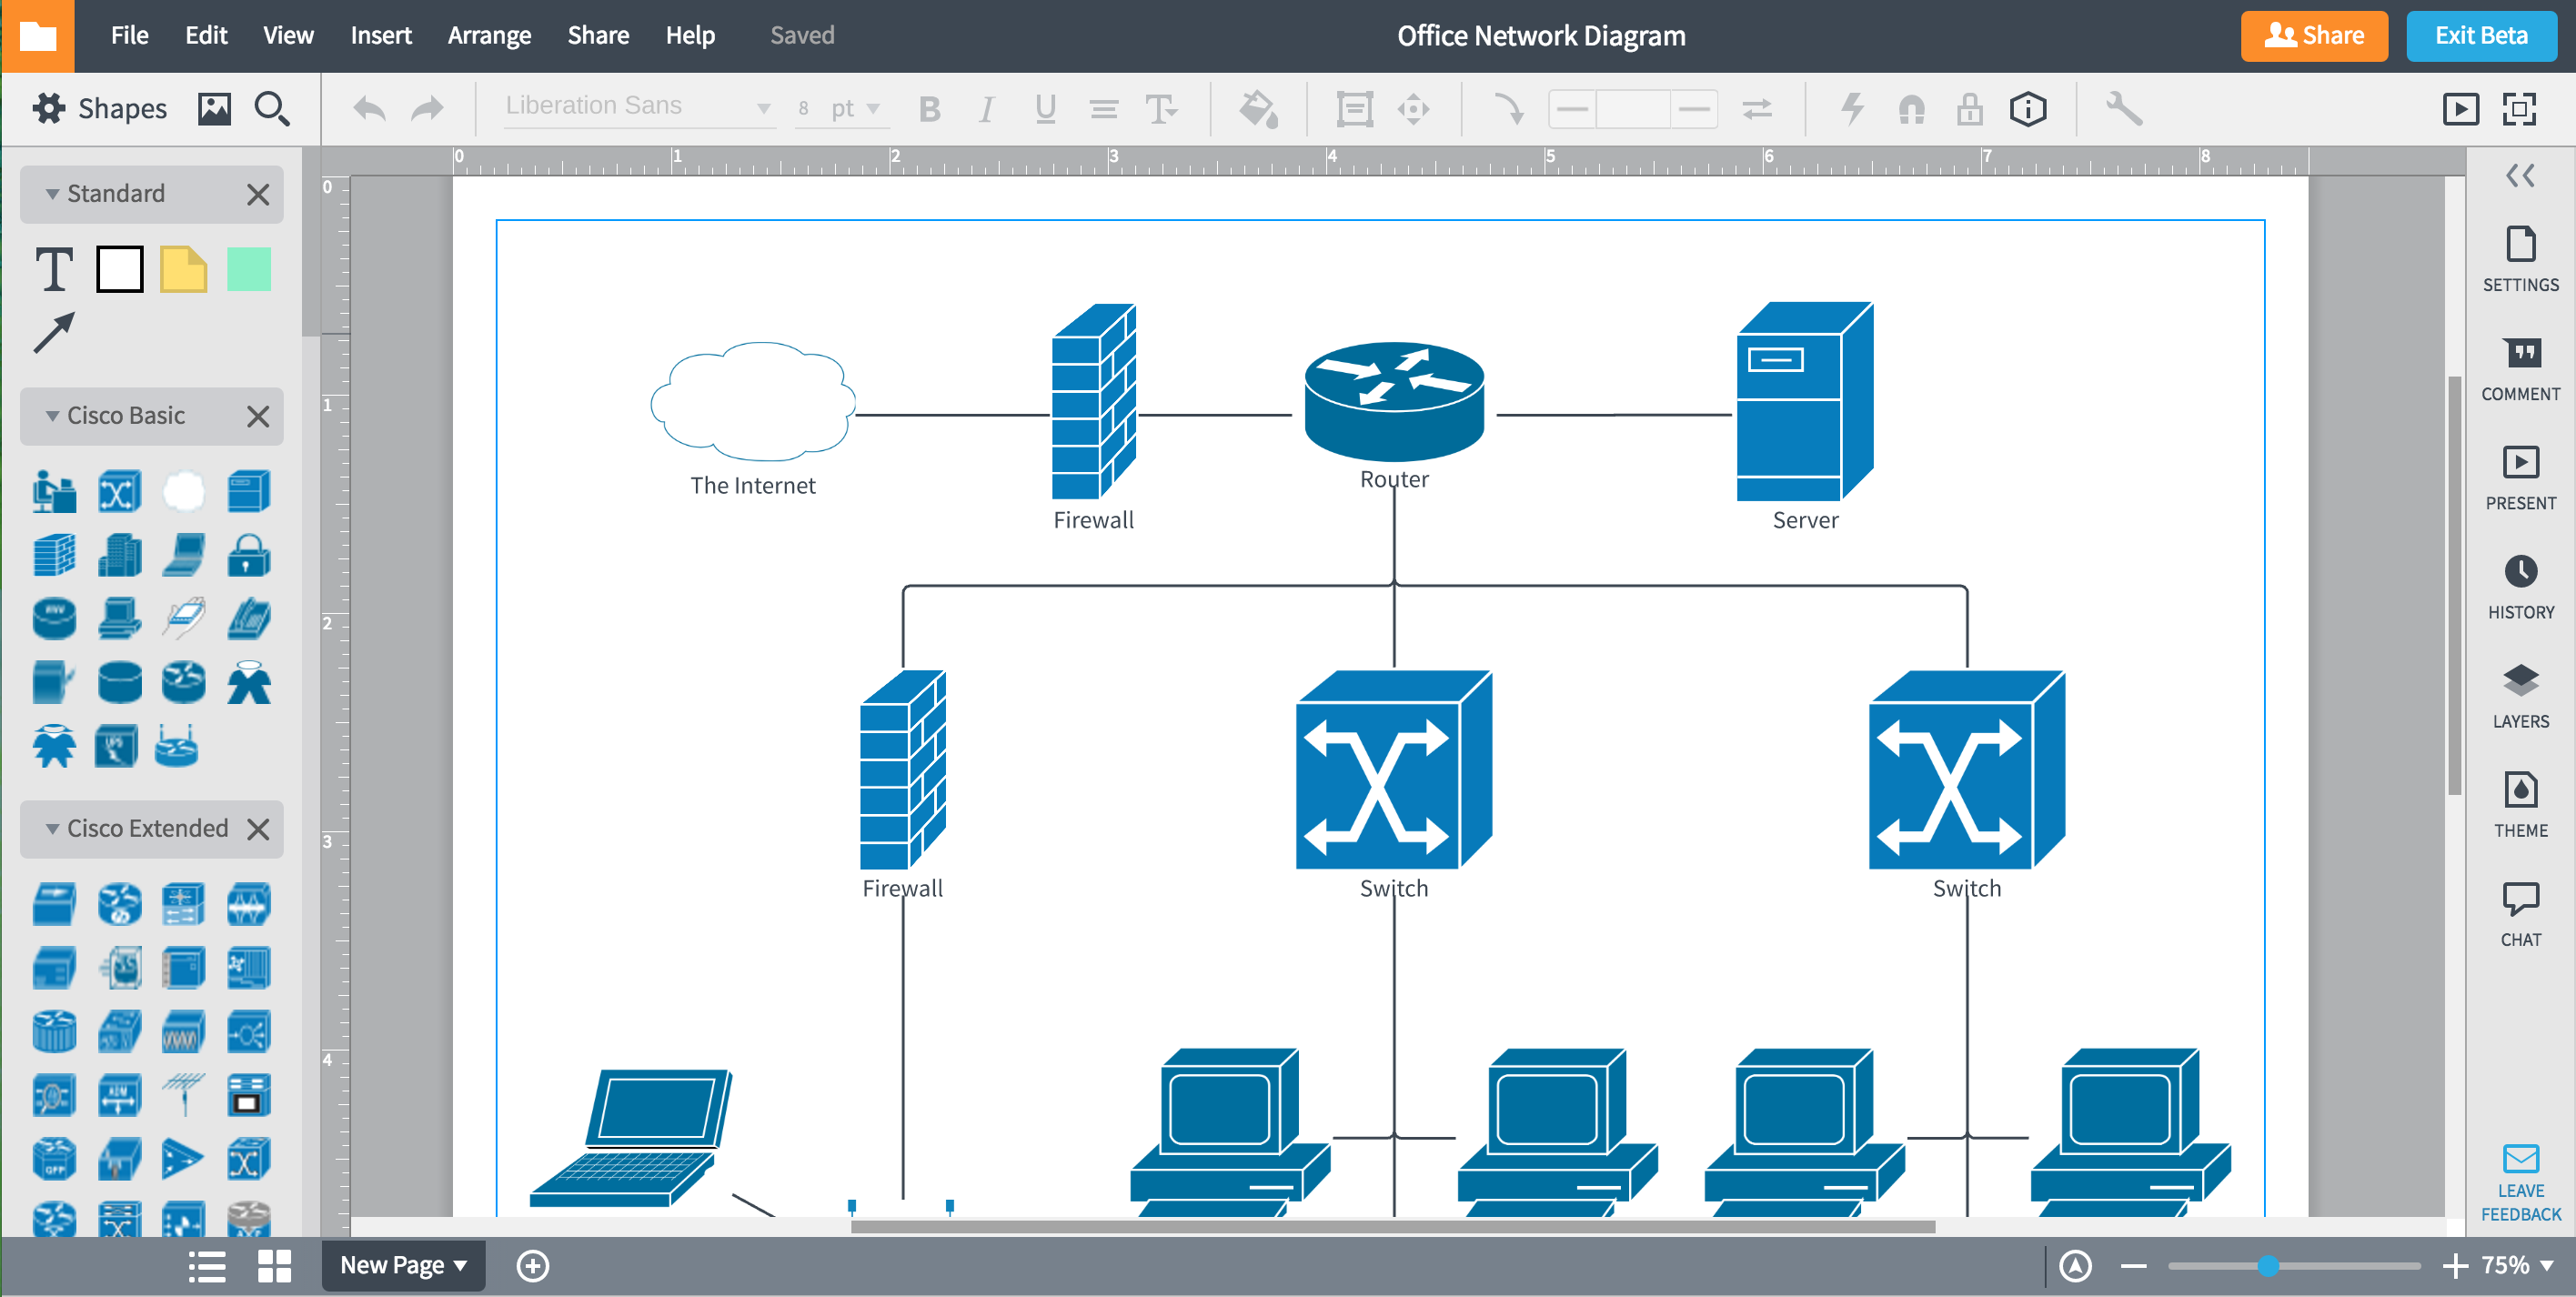 lucidchart - Free Visio Type Software